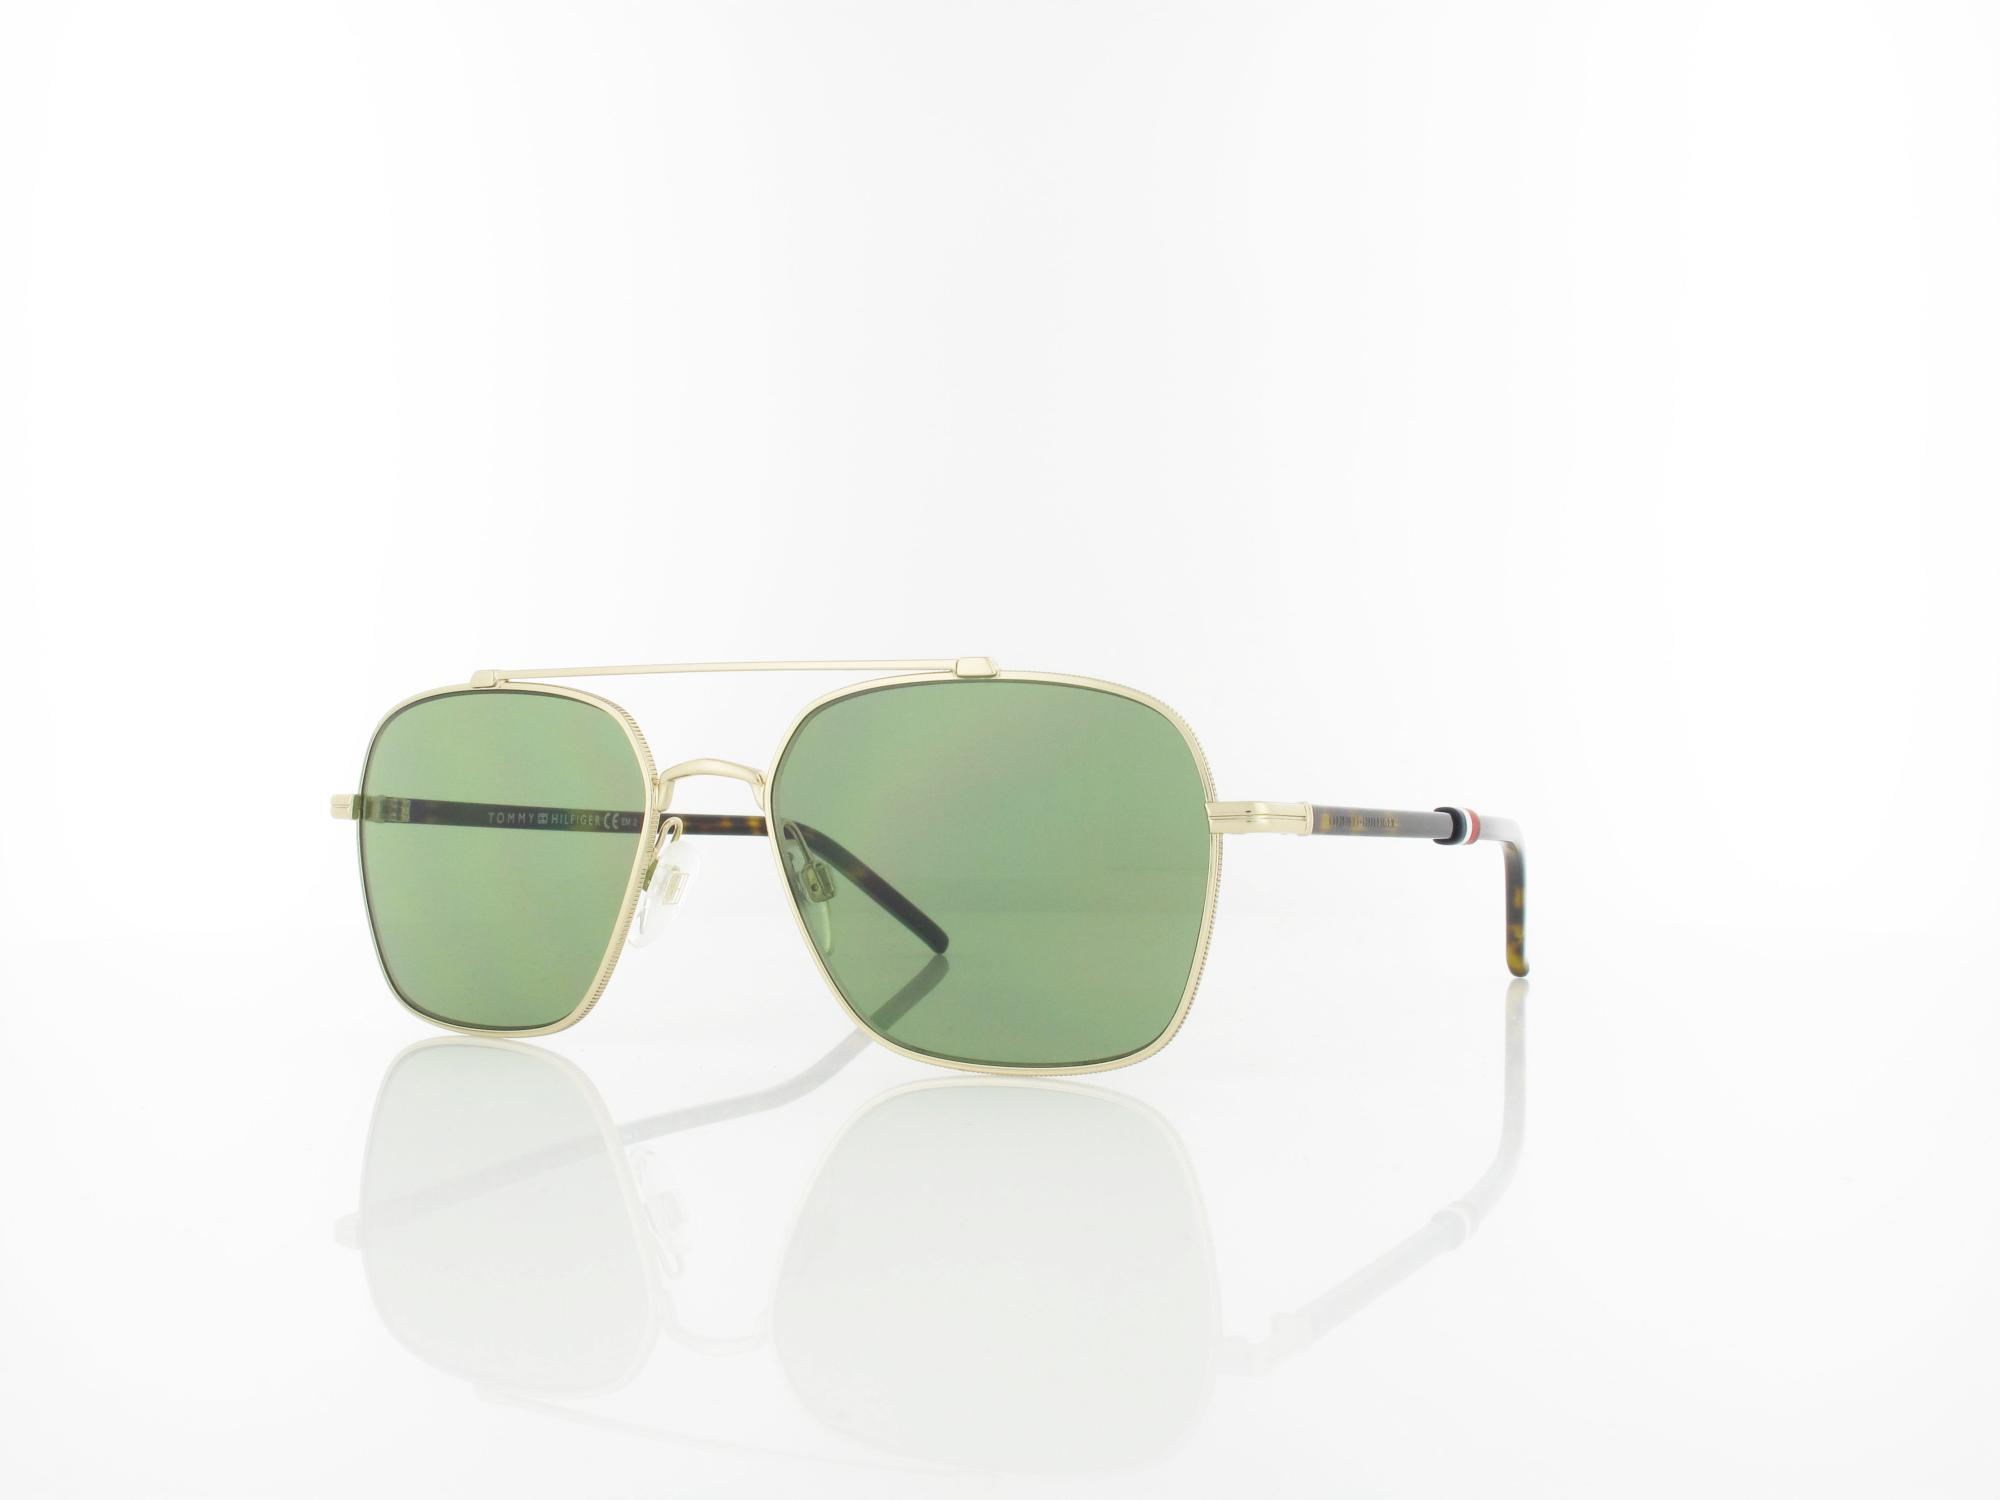 Tommy Hilfiger | TH 1671/S J5G/QT 55 | gold / green